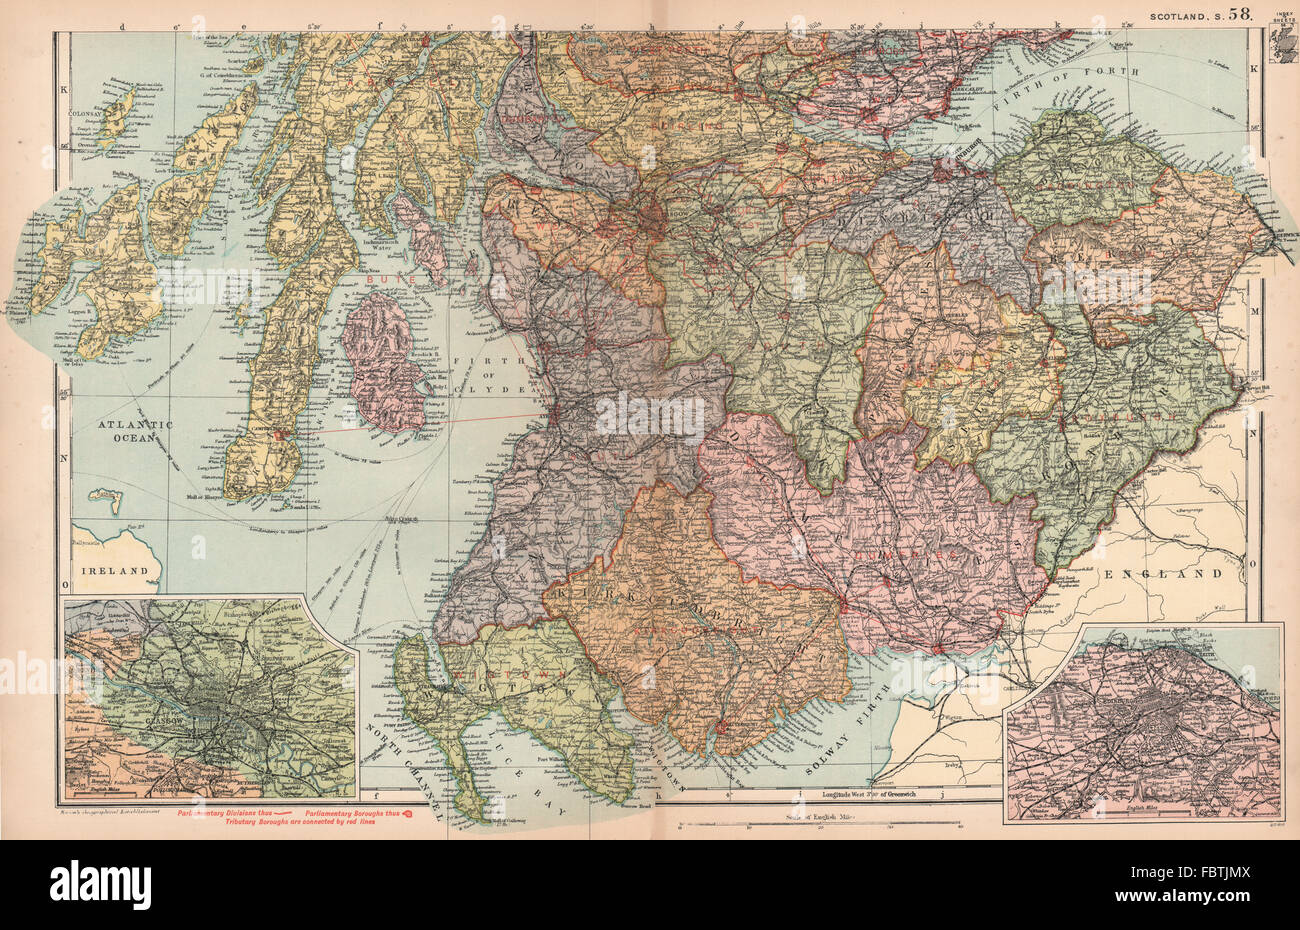 Art Prints Scotland South East Borders Central Edinburgh Glasgow Railways.weller 1862 Map Selling Well All Over The World Antiques